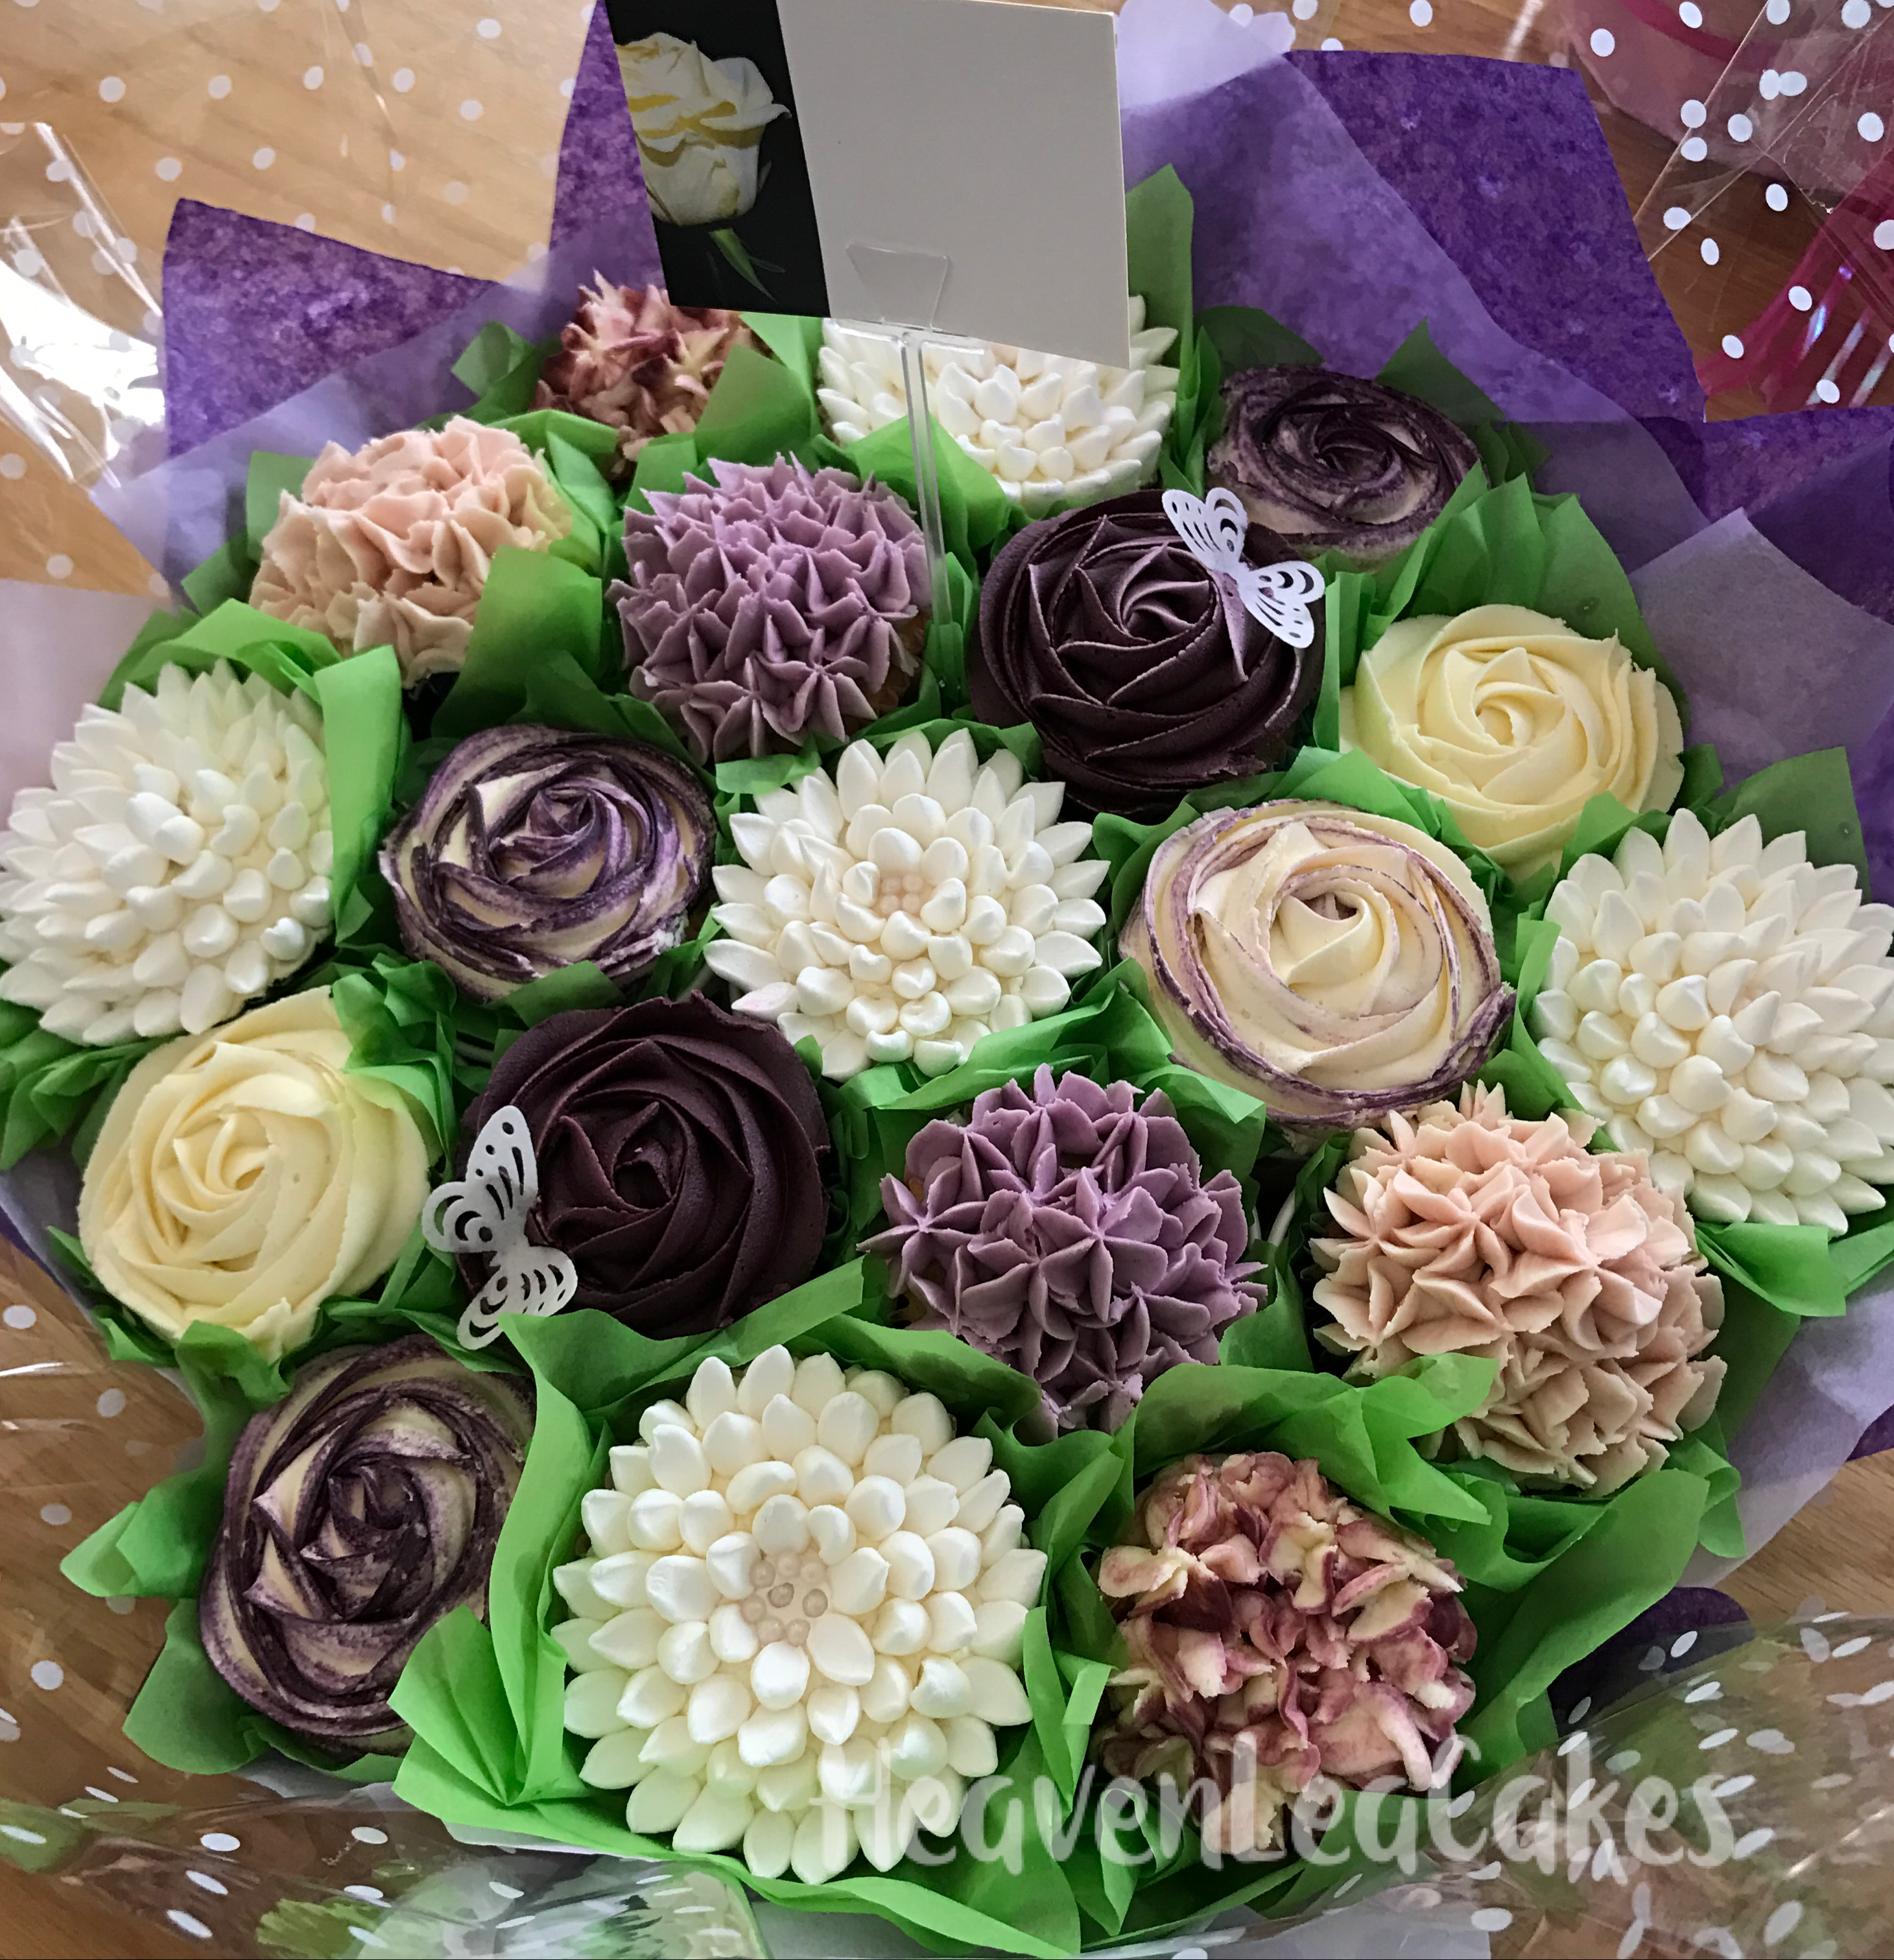 Cupcake Bouquet Course Available For Professional Cake Decorators